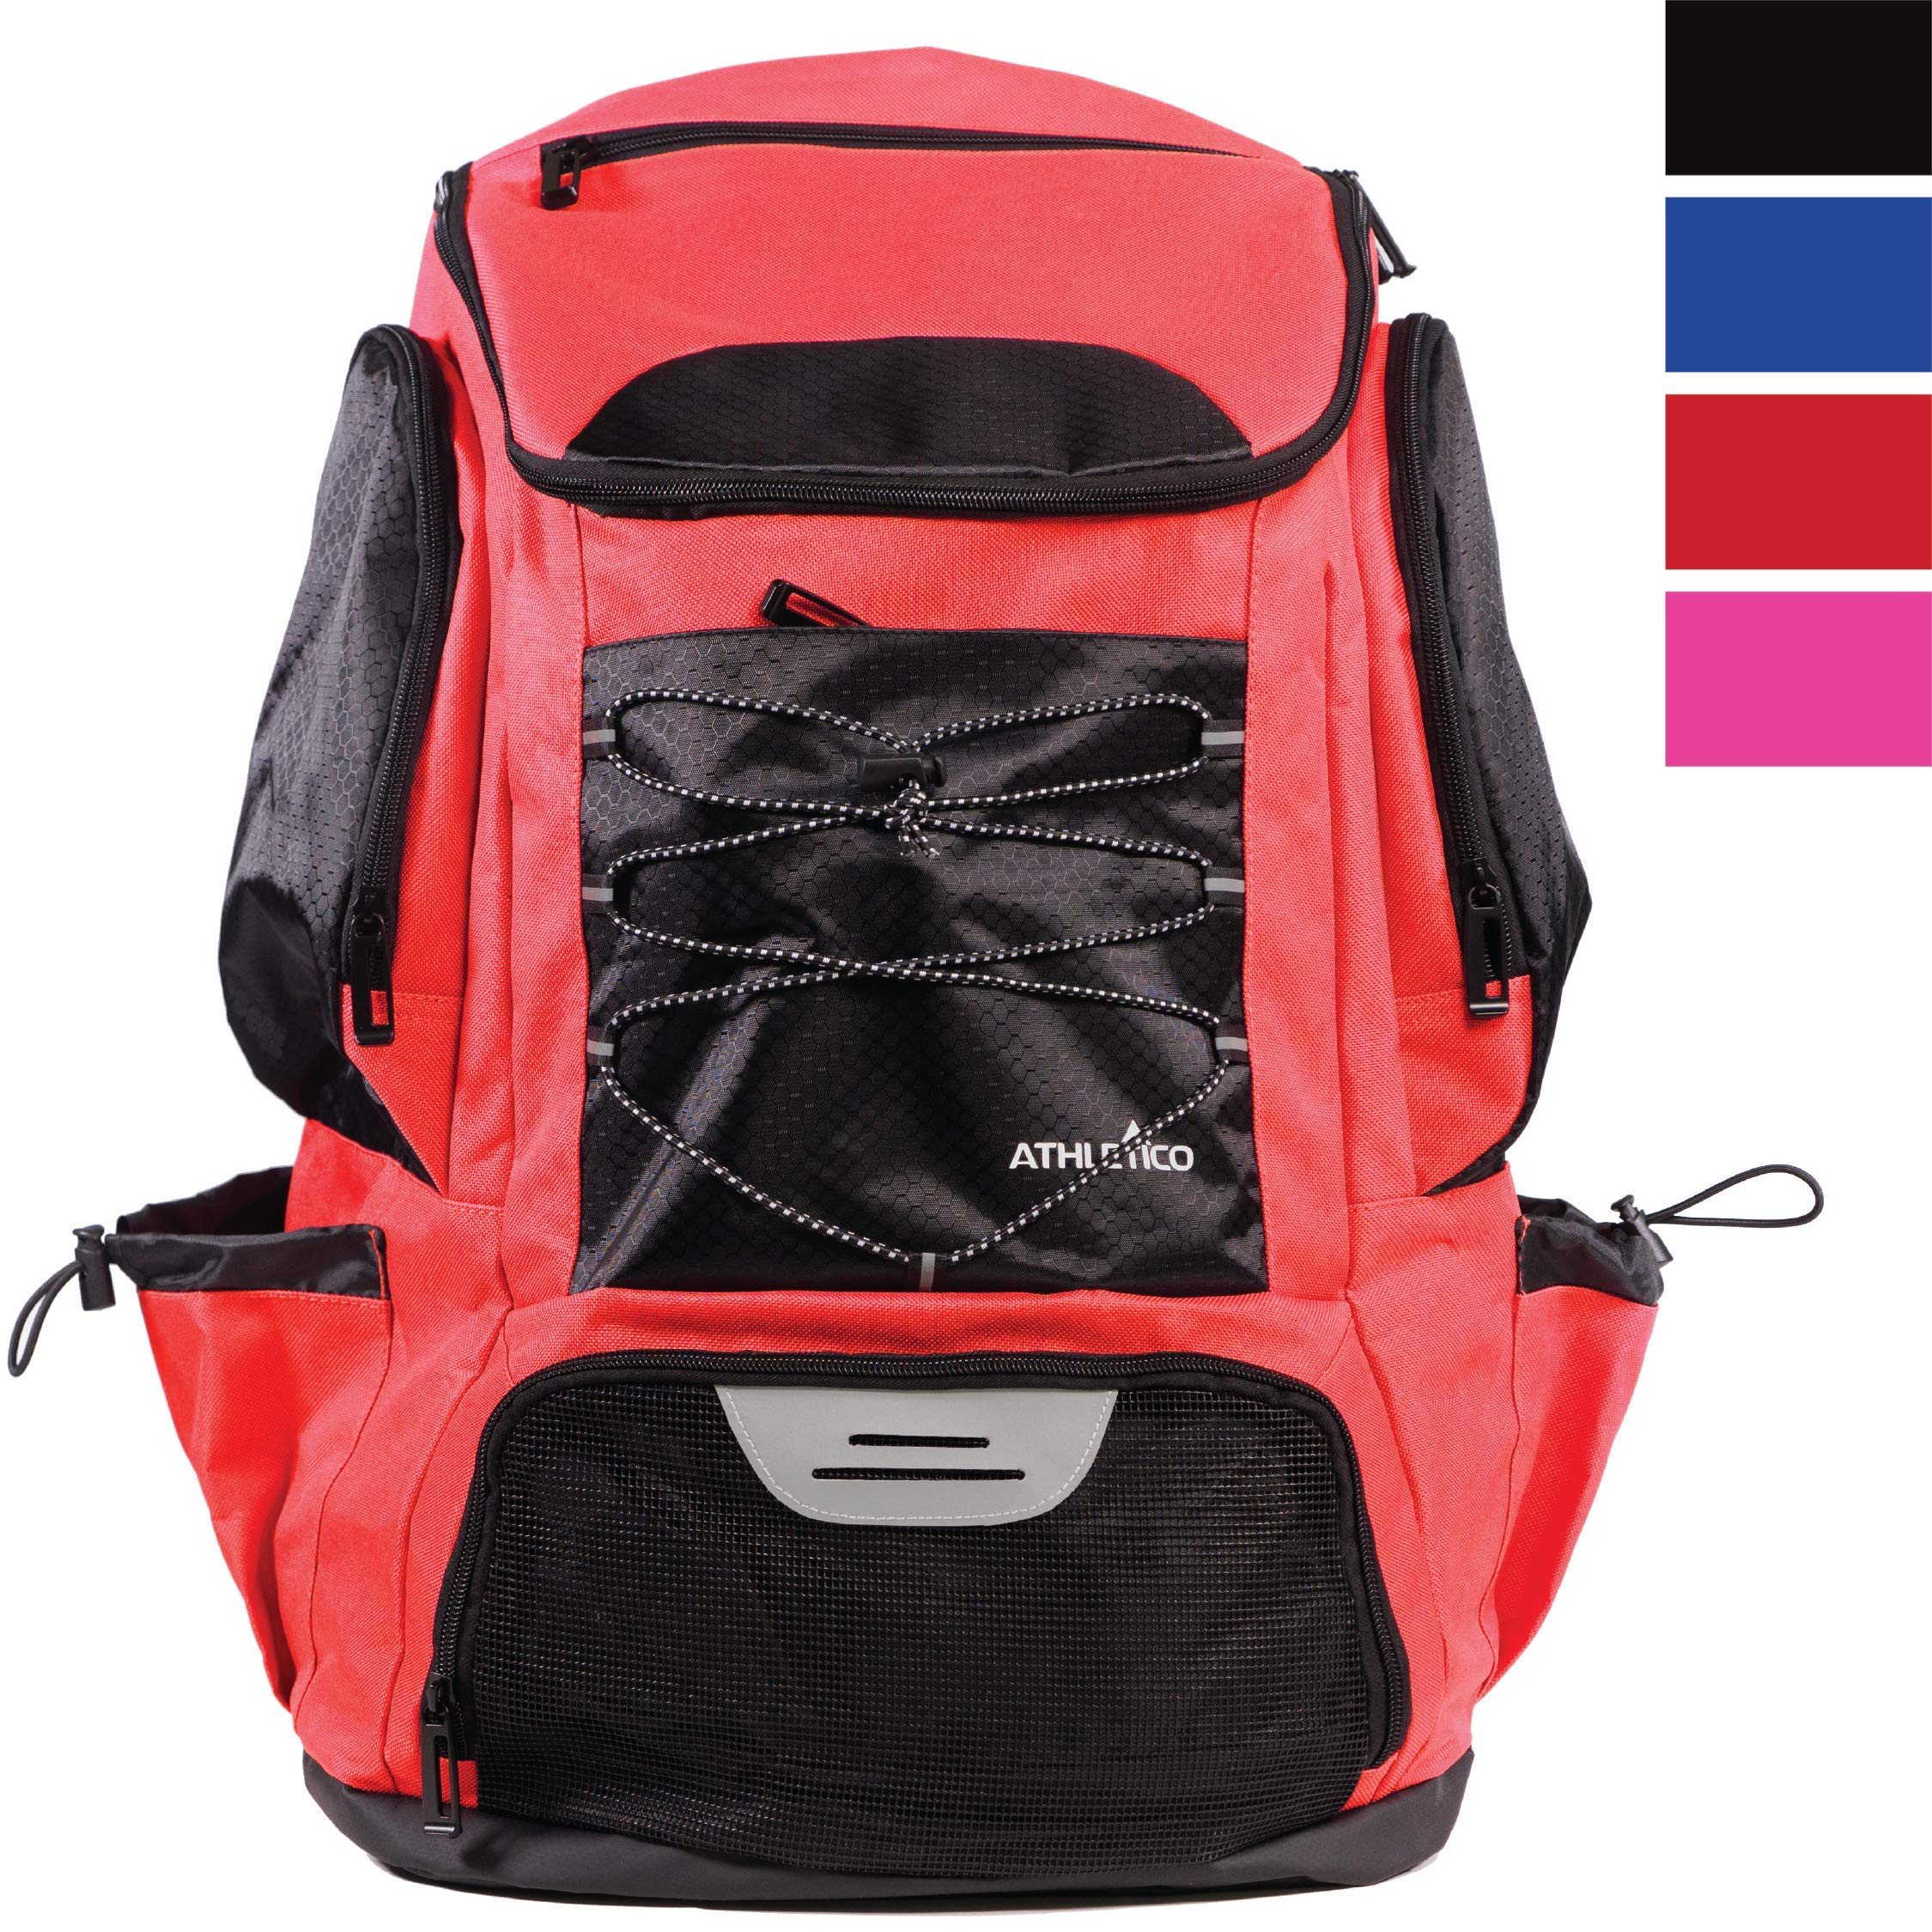 Athletico Swim Backpack - Swim Bag with Wet & Dry Compartments for Swimming, The Beach, Camping - Pool Bags Include Laptop Sleeve